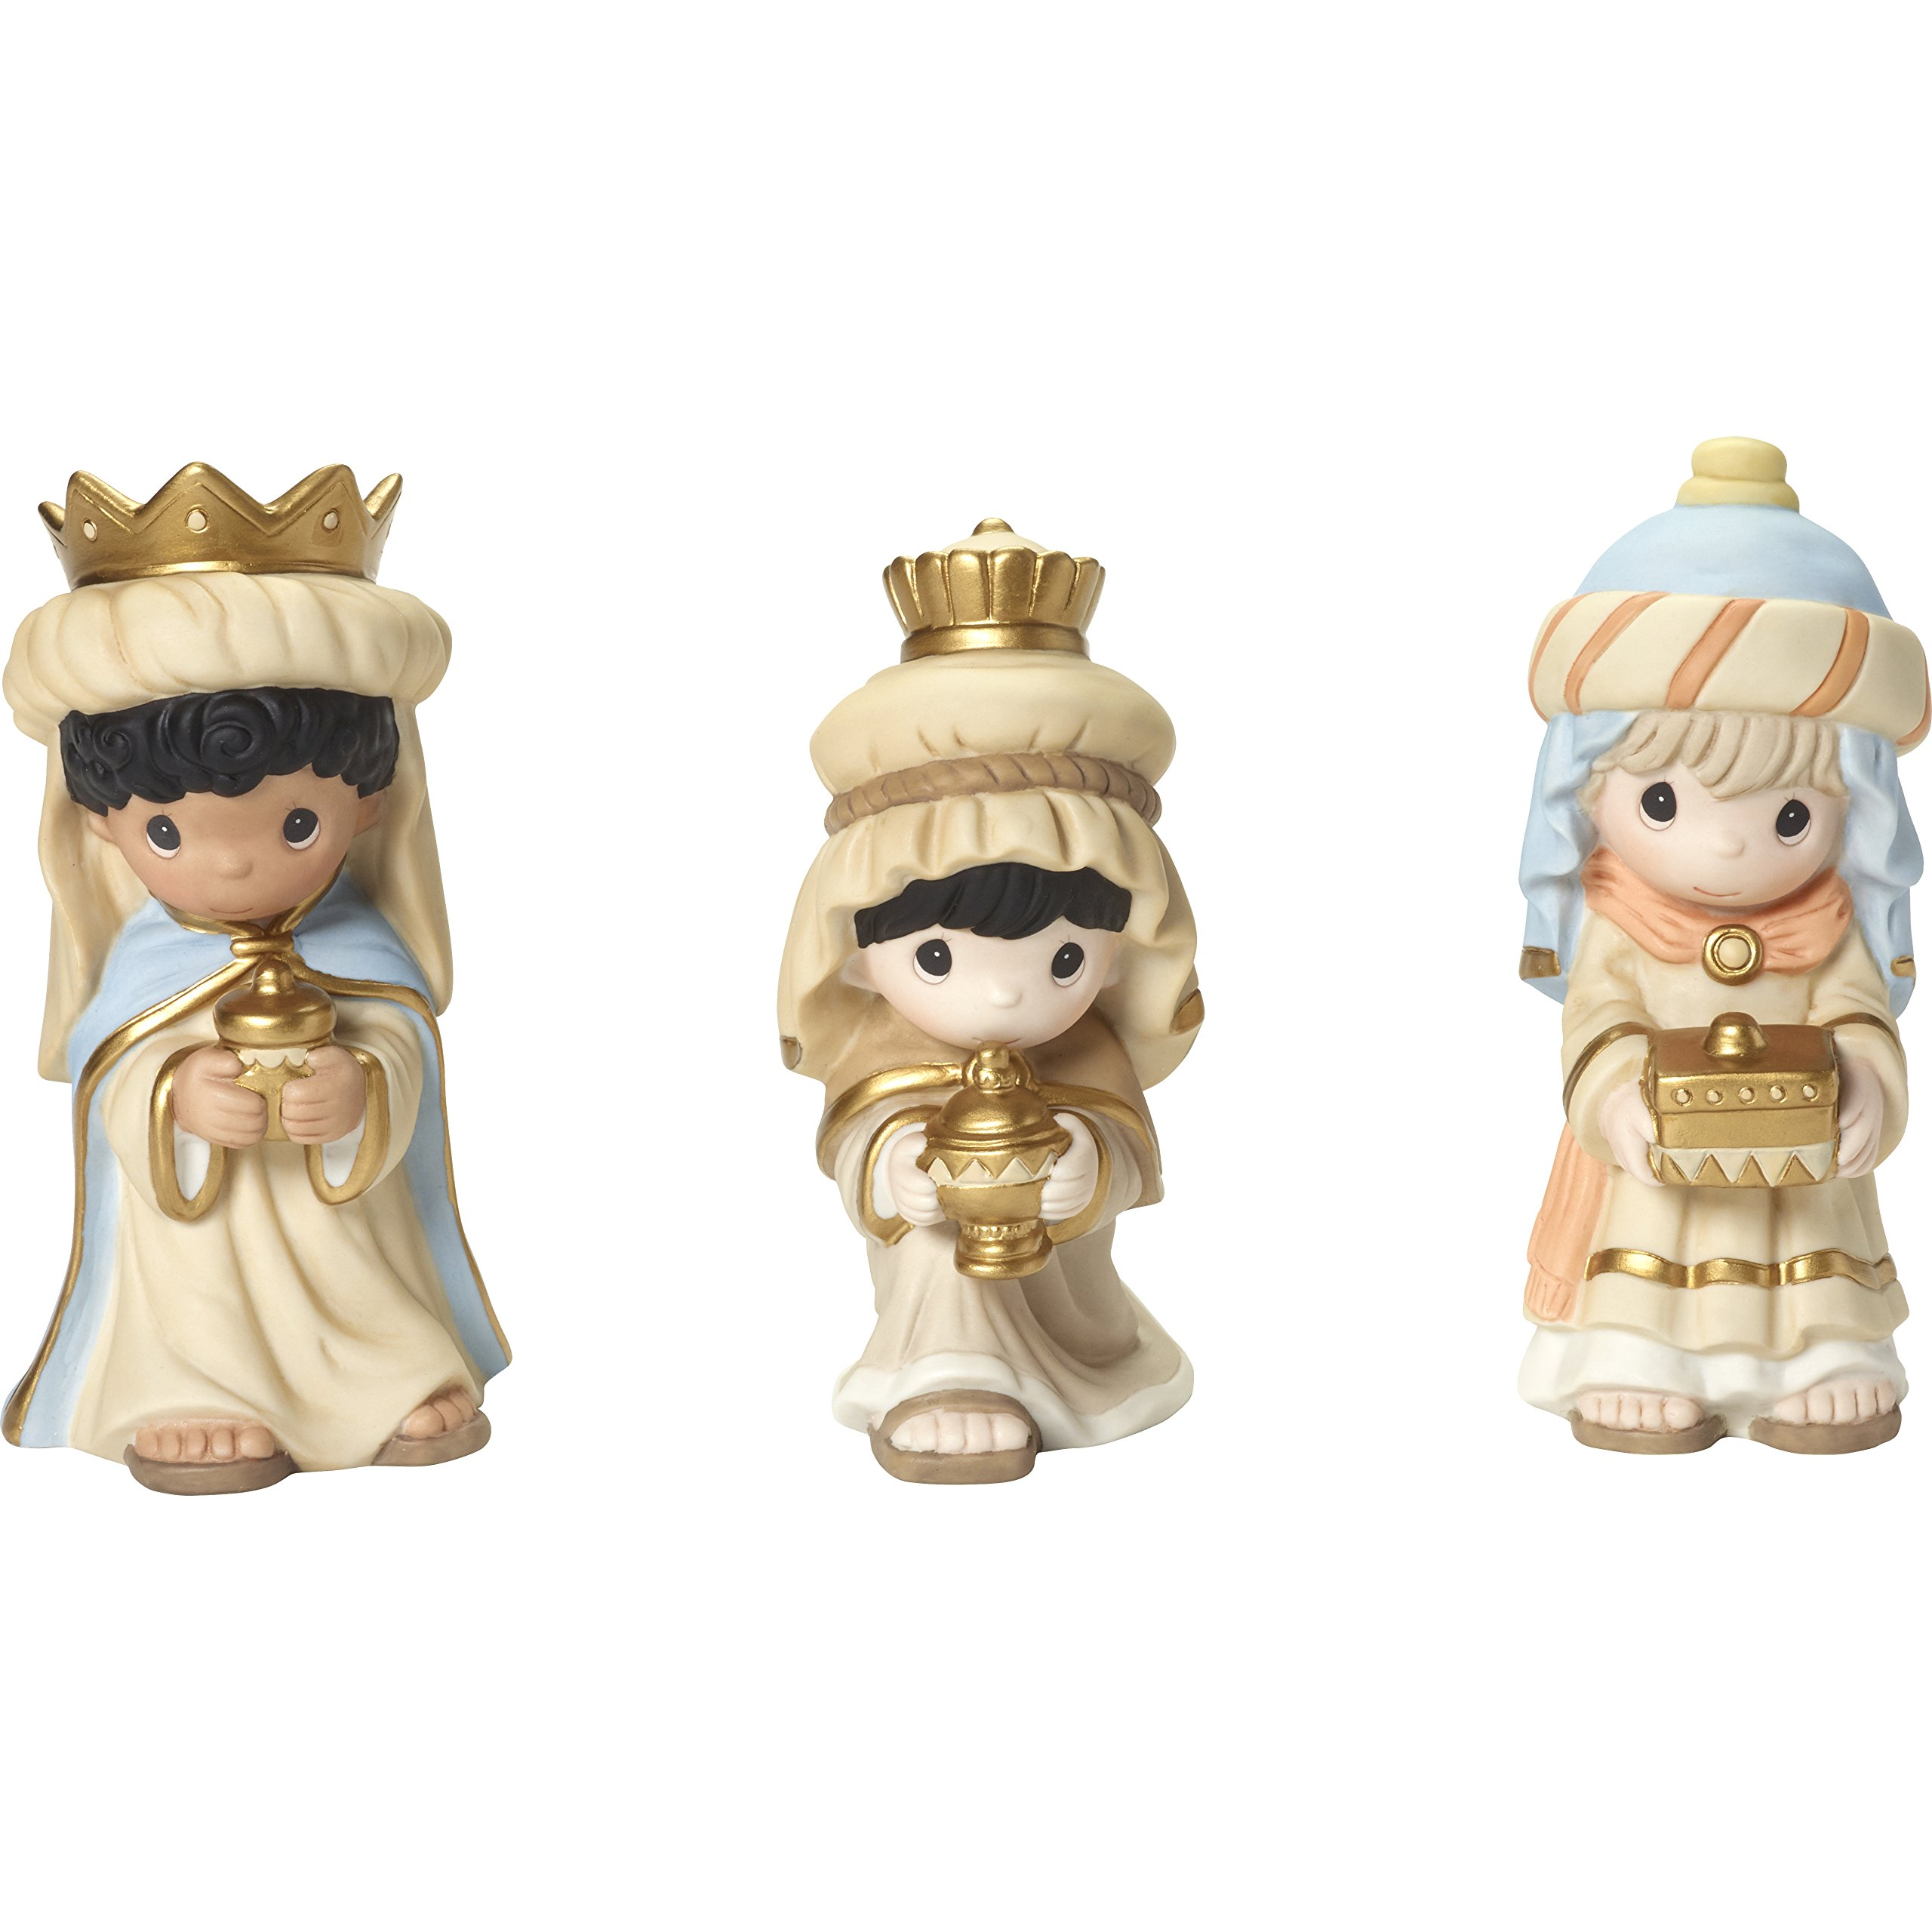 Precious Moments''We Three Kings Wise Men Figurine (Set of 3), Multicolor